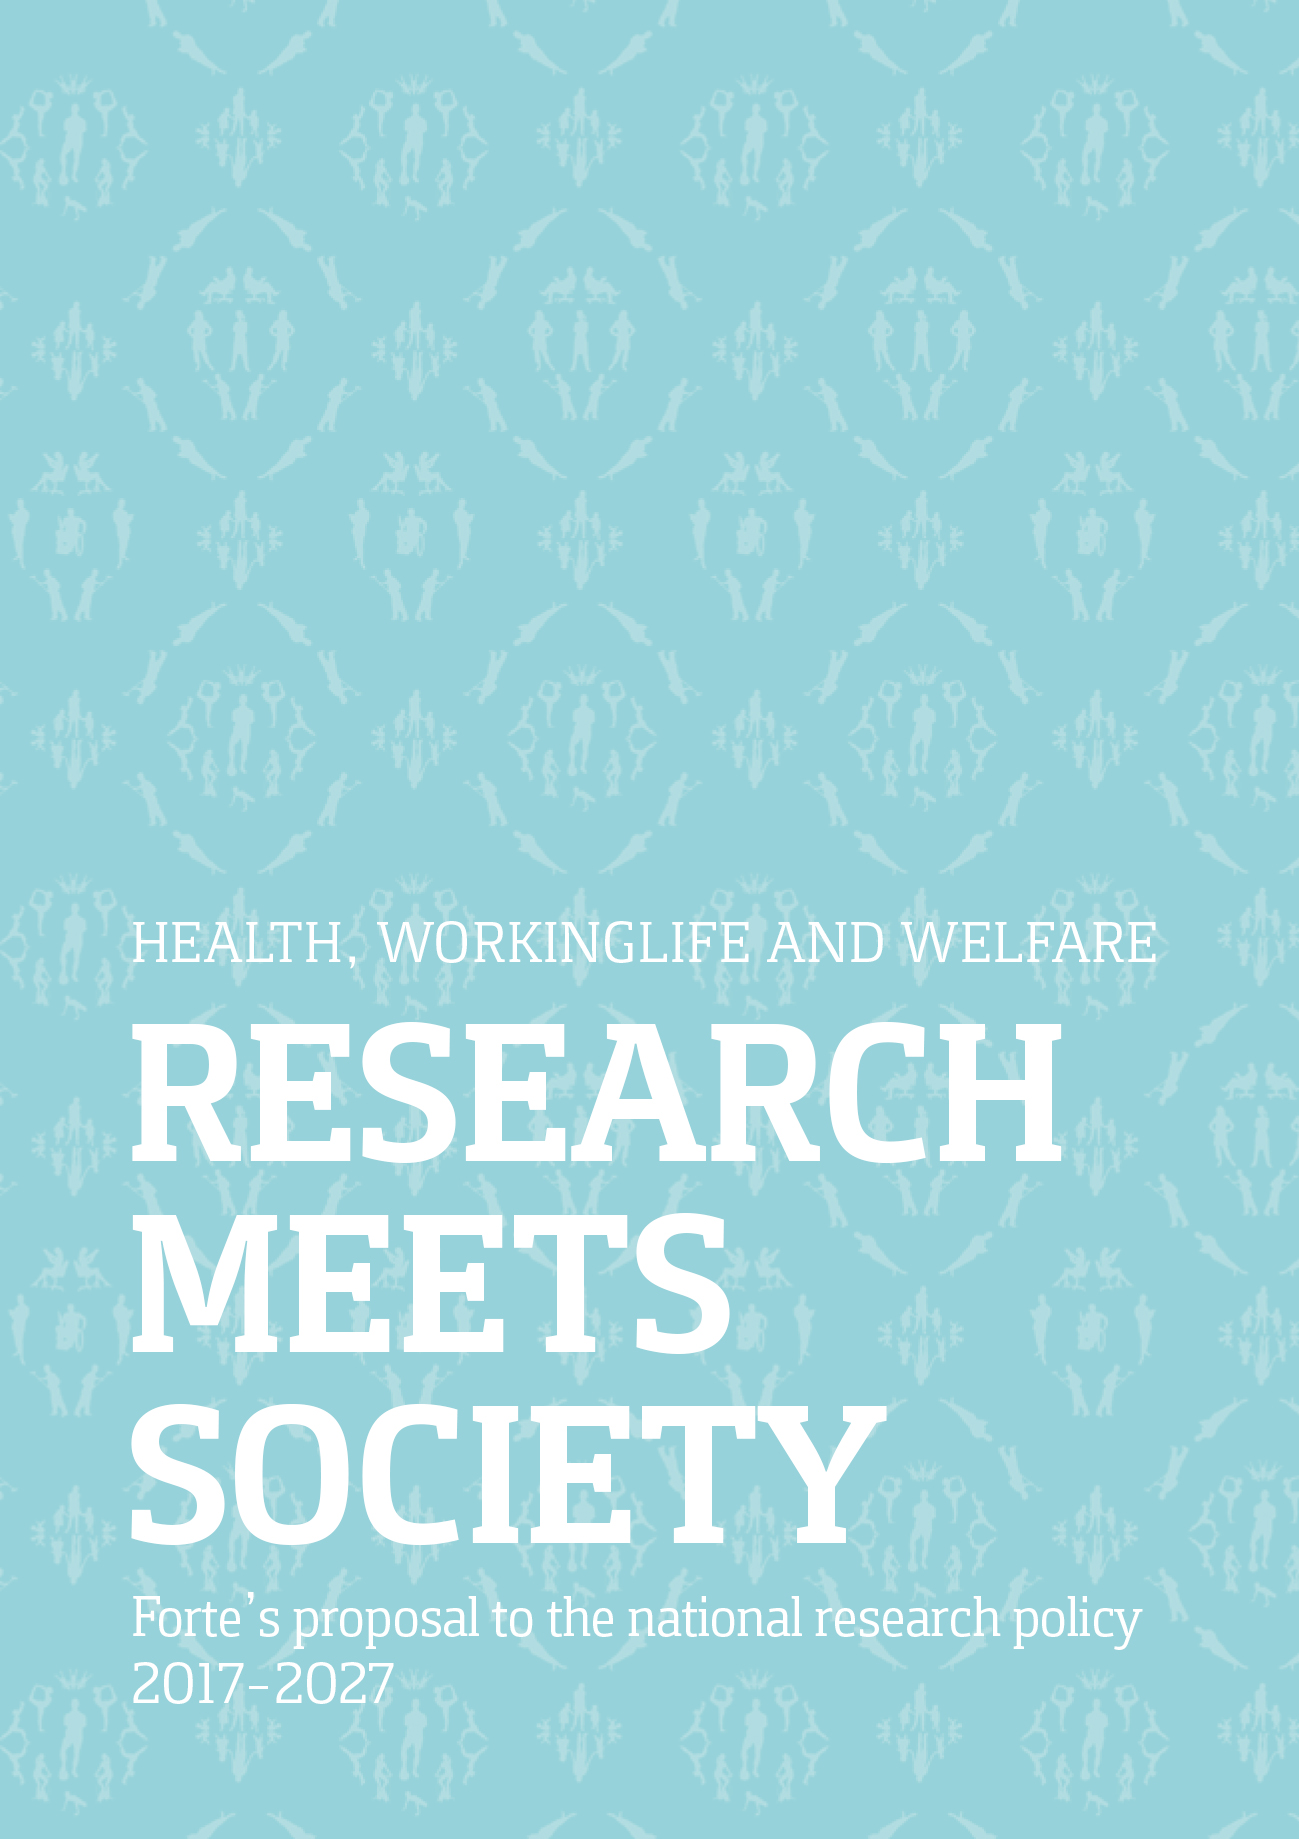 Research meets society